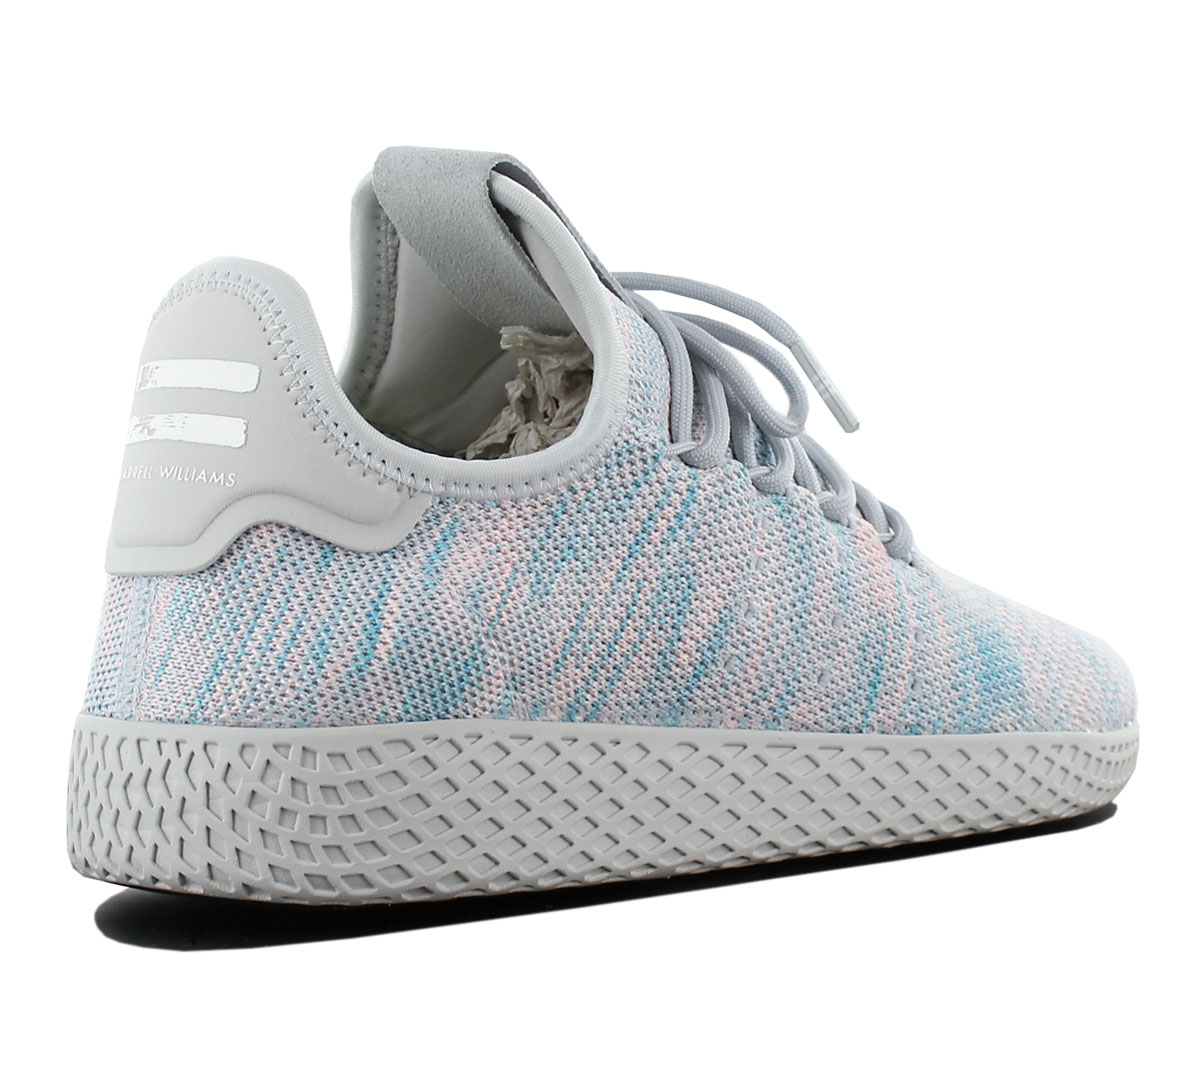 28cff5bf48aa3 Adidas Pharrell Williams Pw Tennis Hu Trainers Shoes Sports By2671 ...